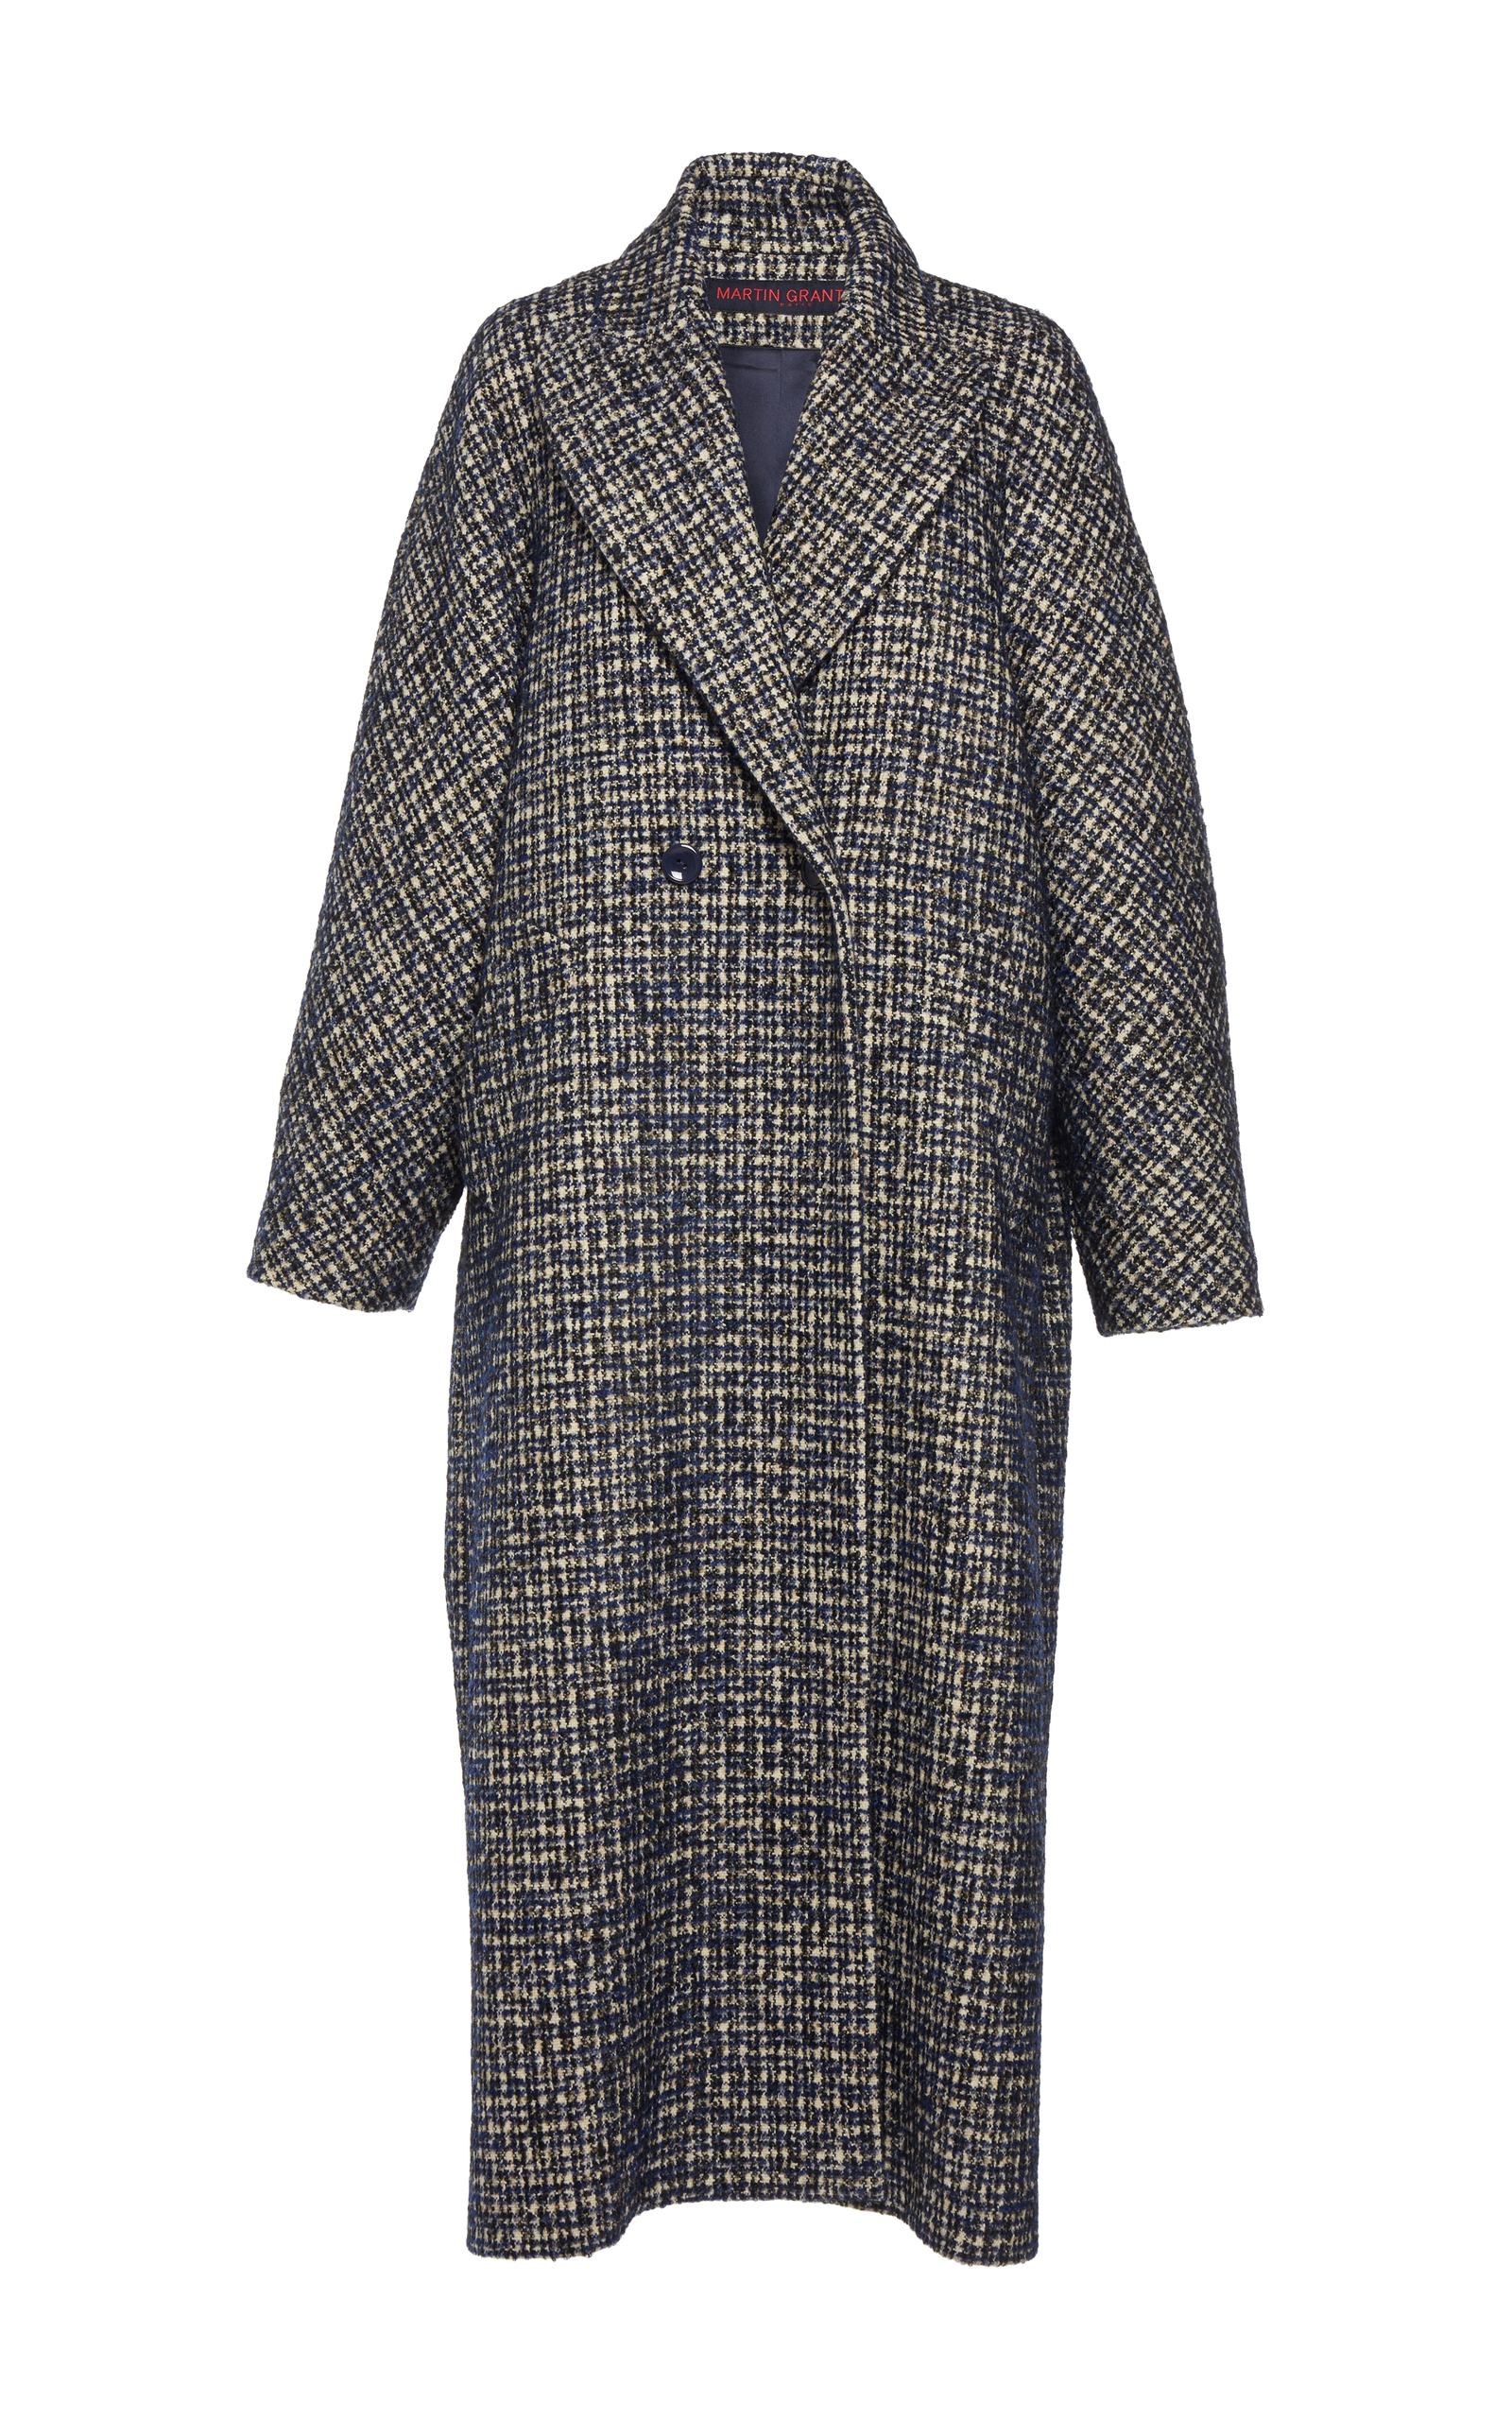 This oversized mens coat is extra fabulous as it's great loose but also fantastic belted showing off your feminine shape. The cut and proportion are prefect. Tre bien Martin Grant.